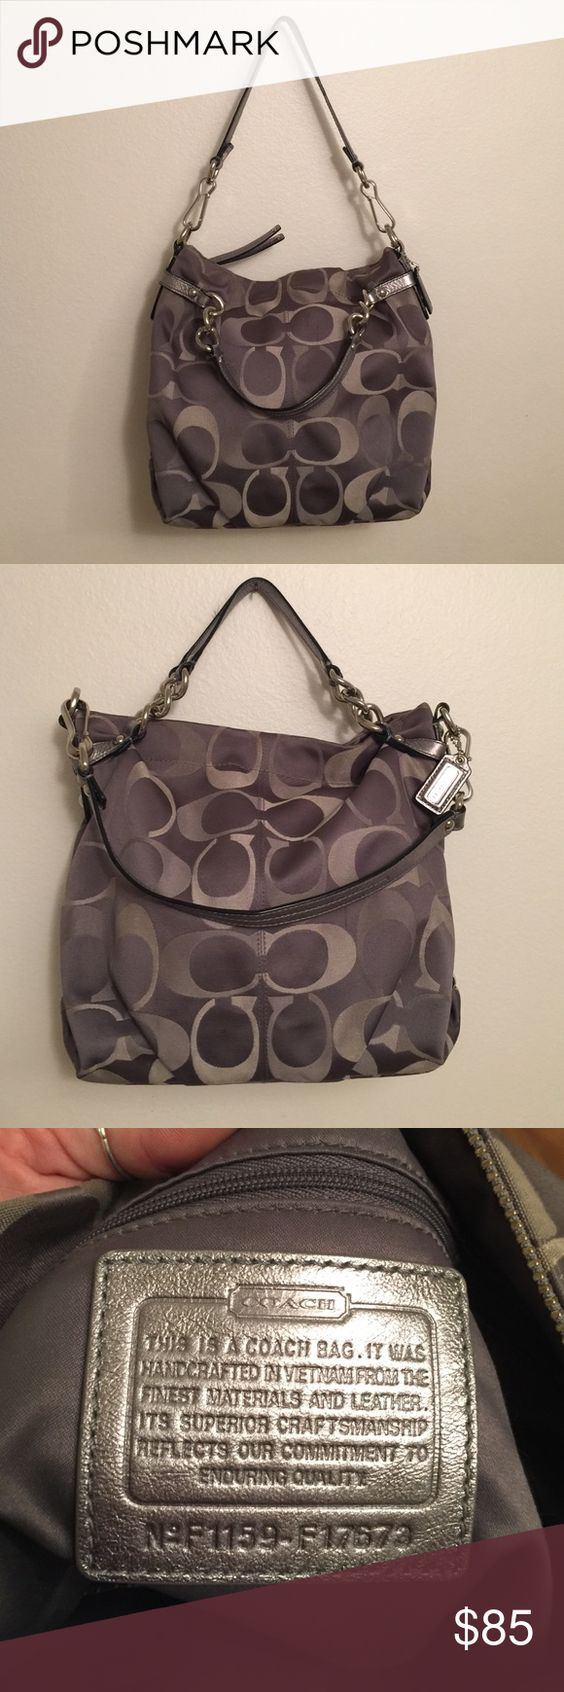 Grey signature Coach purse Authentic grey signature Coach purse with silver hardware. Can be worn over the shoulder as a hobo style purse or remove the shoulder strap and carry it as a handbag. Only used a few times. Coach Bags Hobos